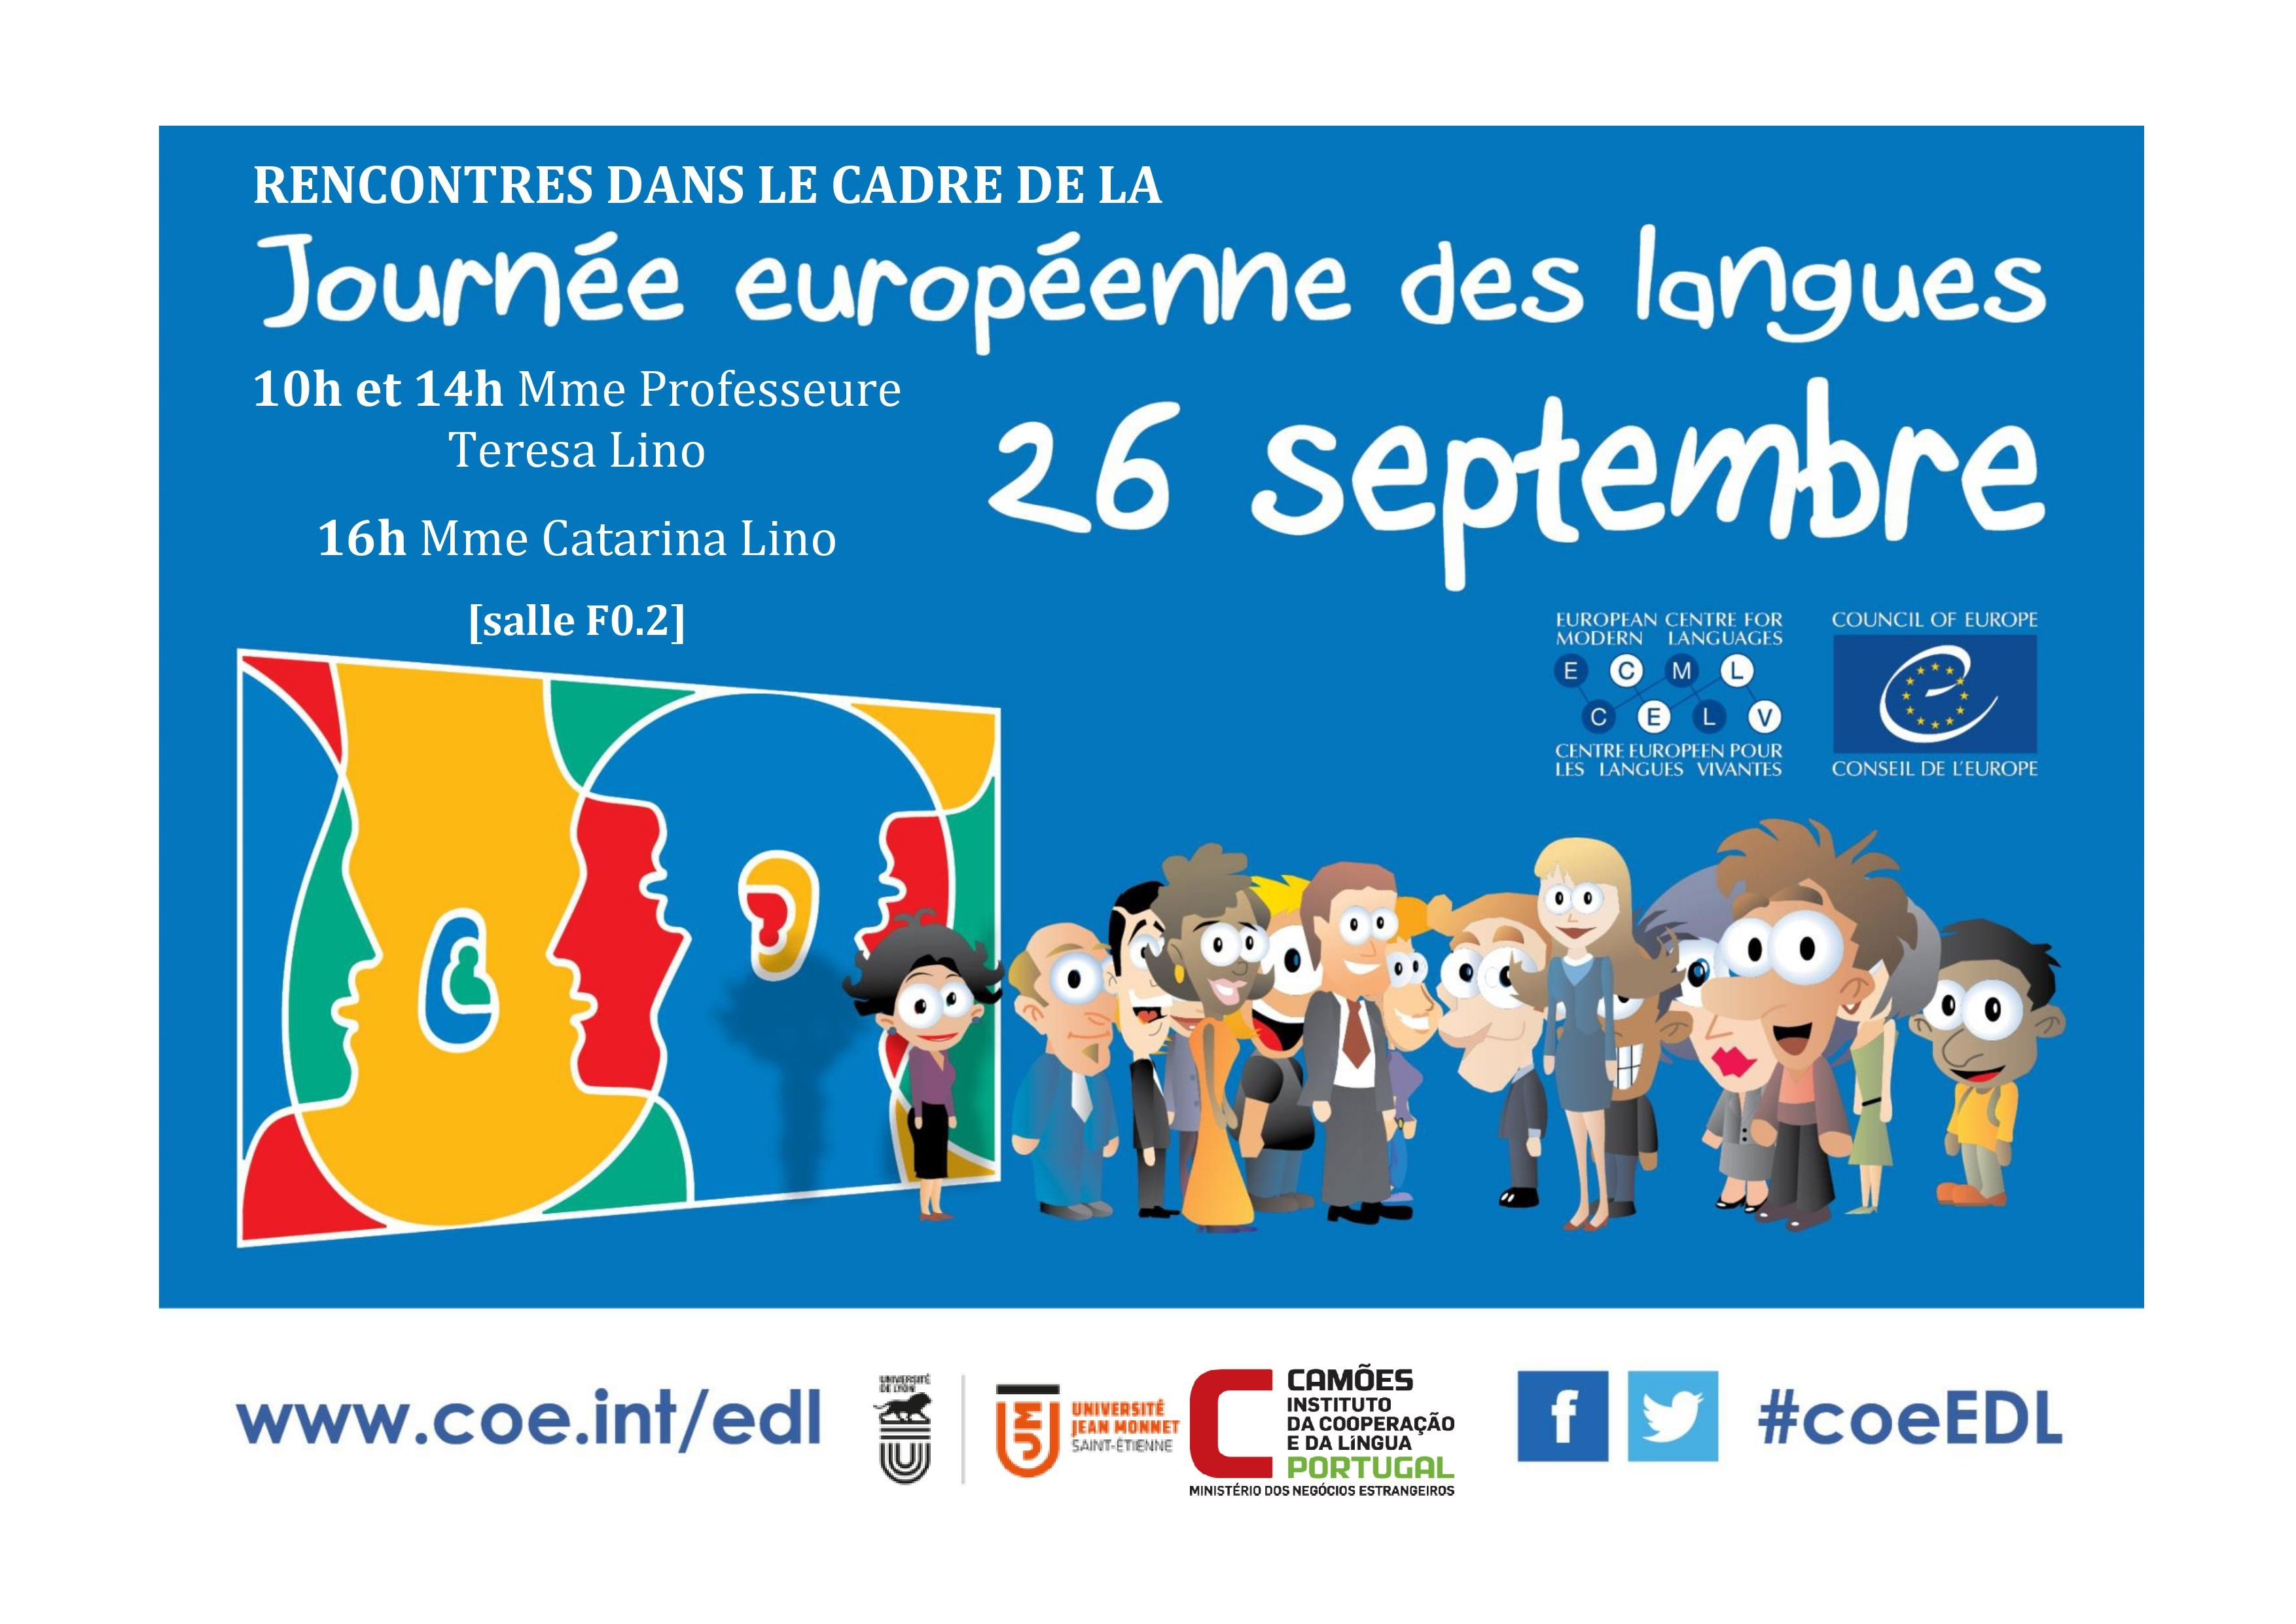 Calendario 2019 Fes Aragon Más Recientemente Liberado European Day Of Languages events events Database Of Calendario 2019 Fes Aragon Más Recientes Informes Calendario Hebraico 2019